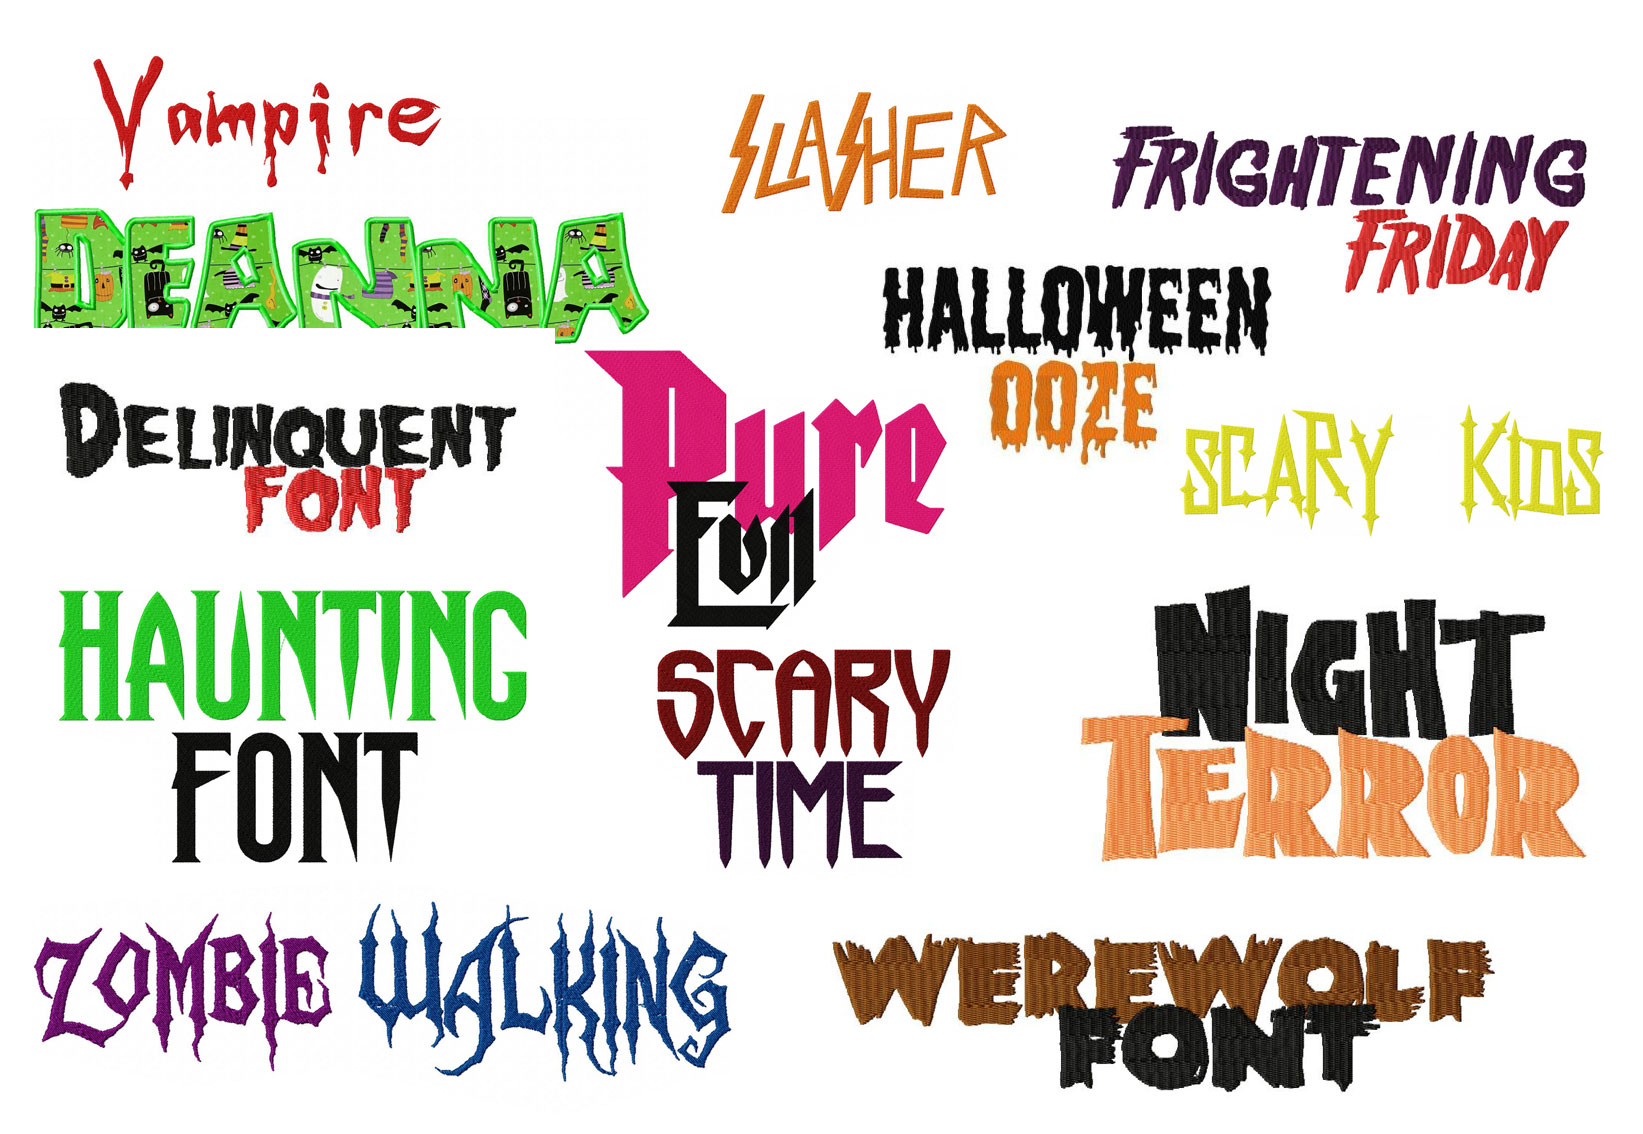 Halloween Embroidery Font Deal | Embroidery Super Deal